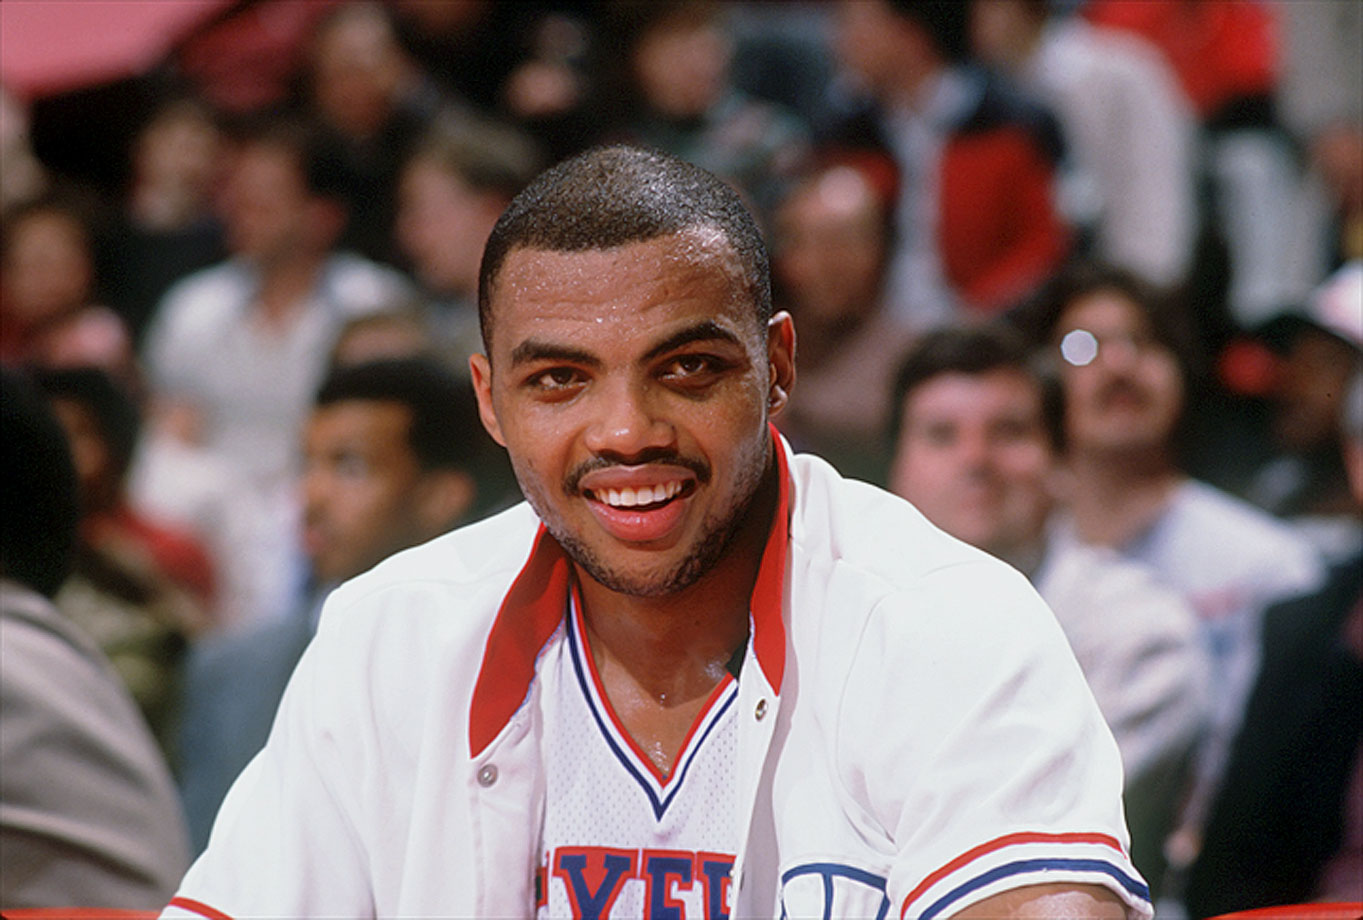 Charles Barkley smiles on the bench during a game against the Portland Trail Blazers.